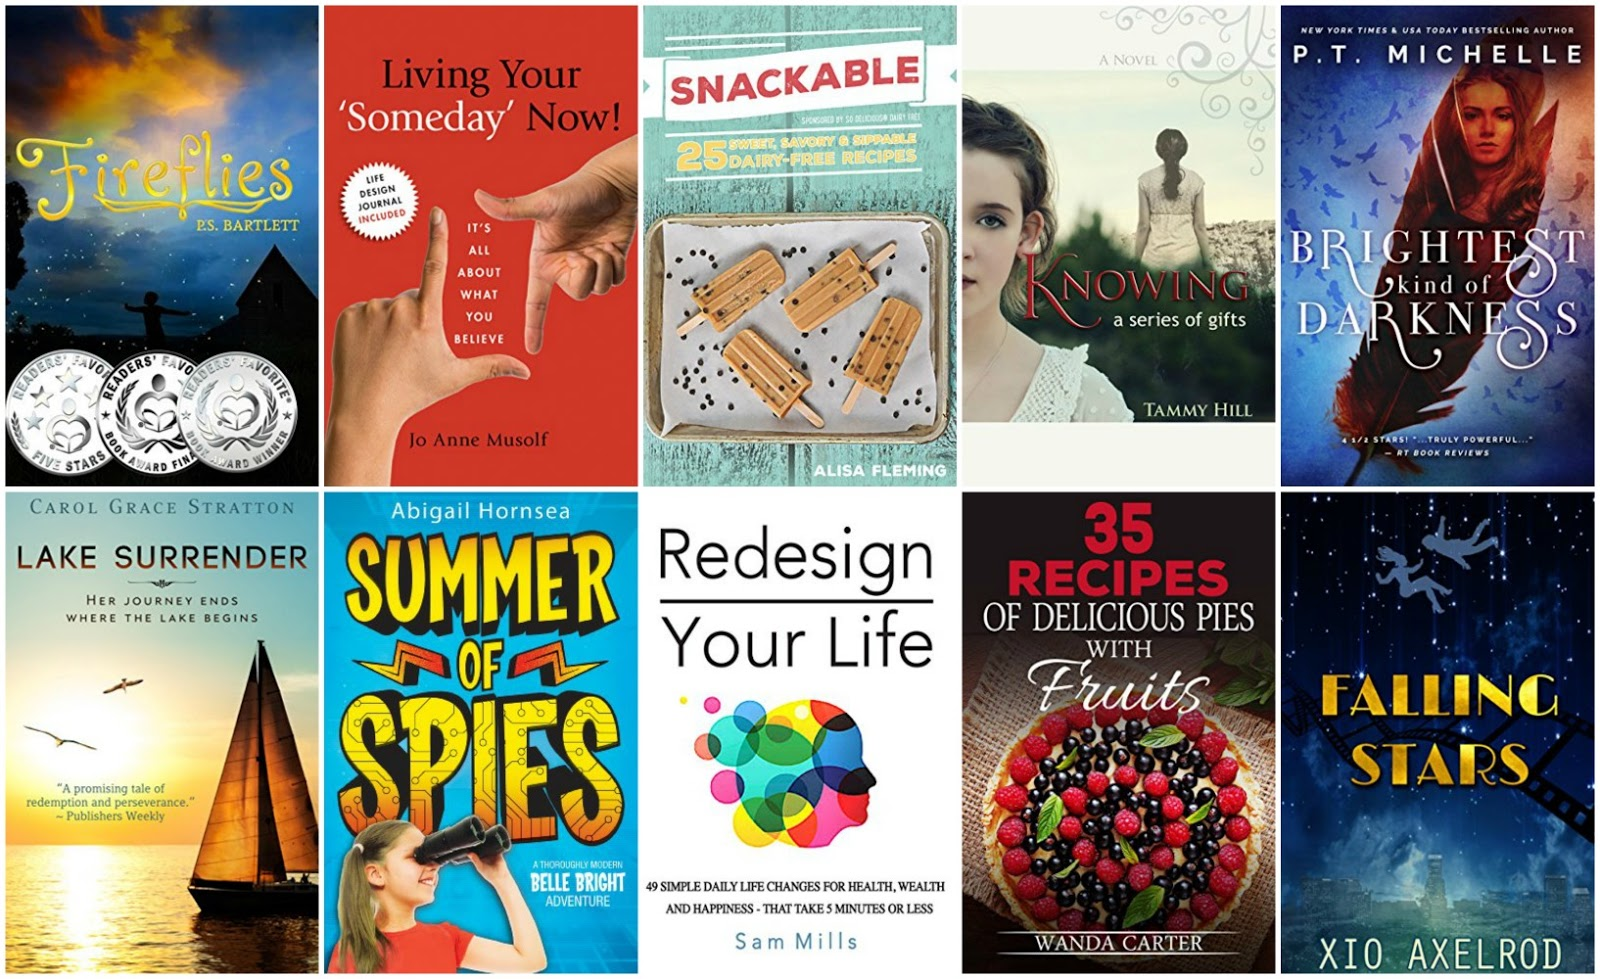 Todays Top 10 Free Ebooks July 12:  Redesign Your Life, Falling Stars, Brightest Kind of Darkness & more